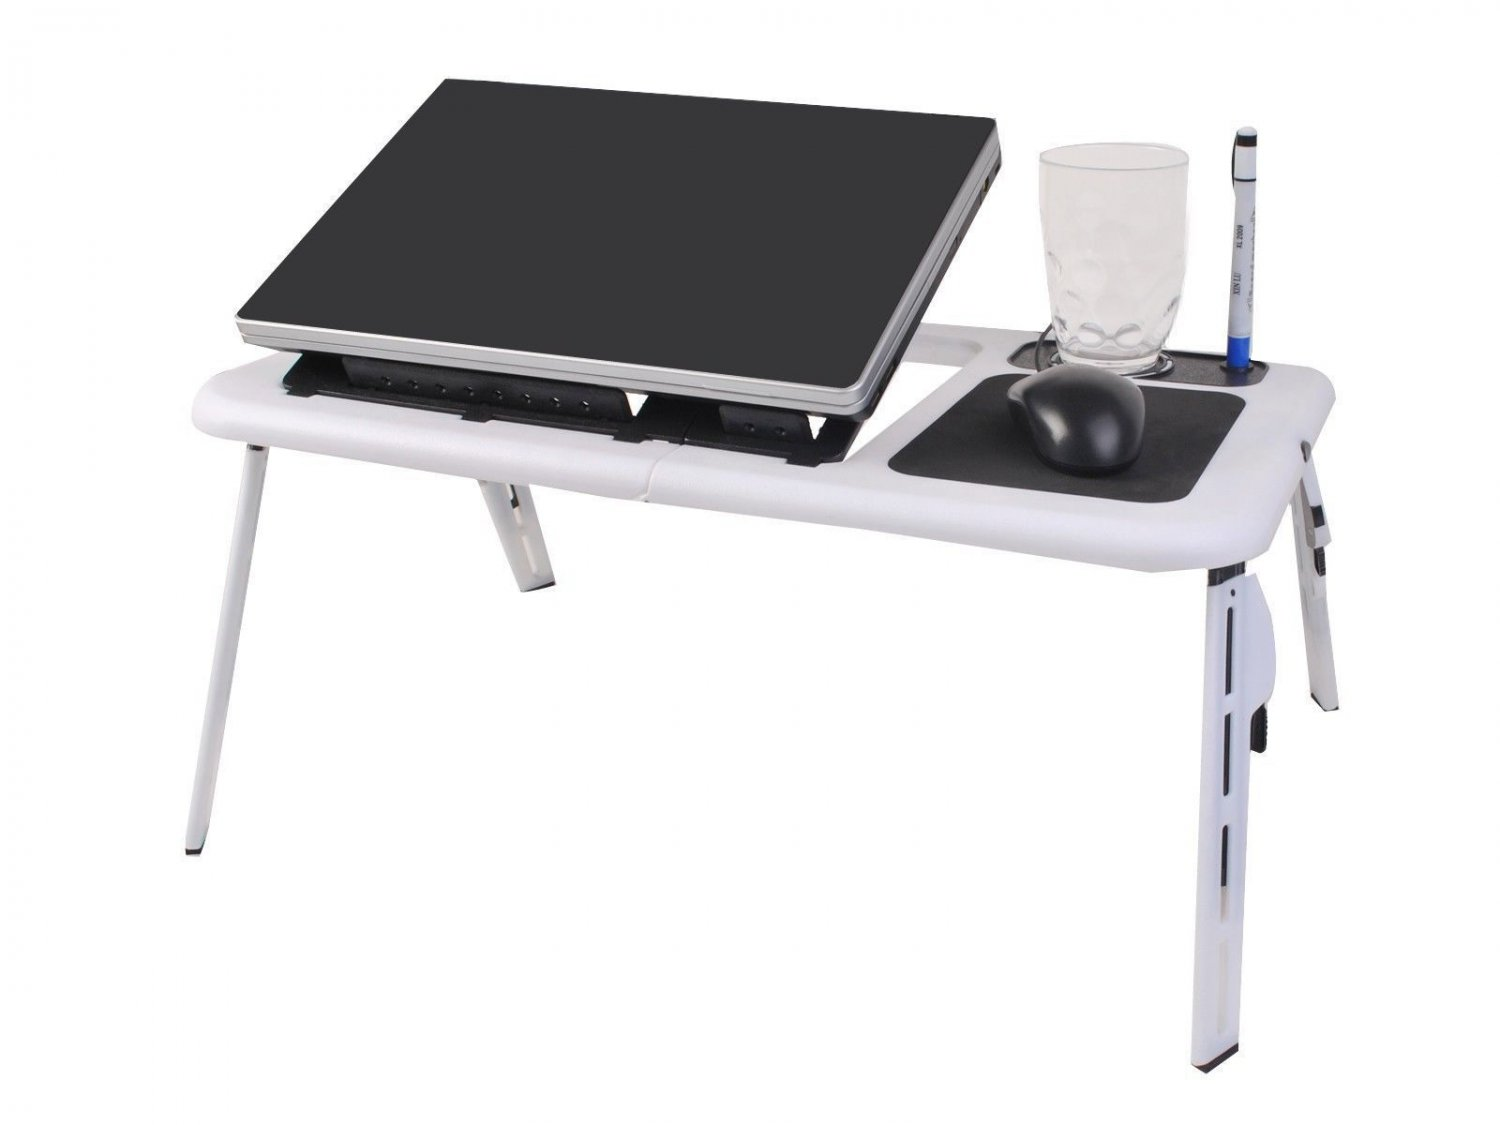 Foldable Laptop Table Tray Desk Cooling Fan Tablet Desk Stand Bed Sofa Couch